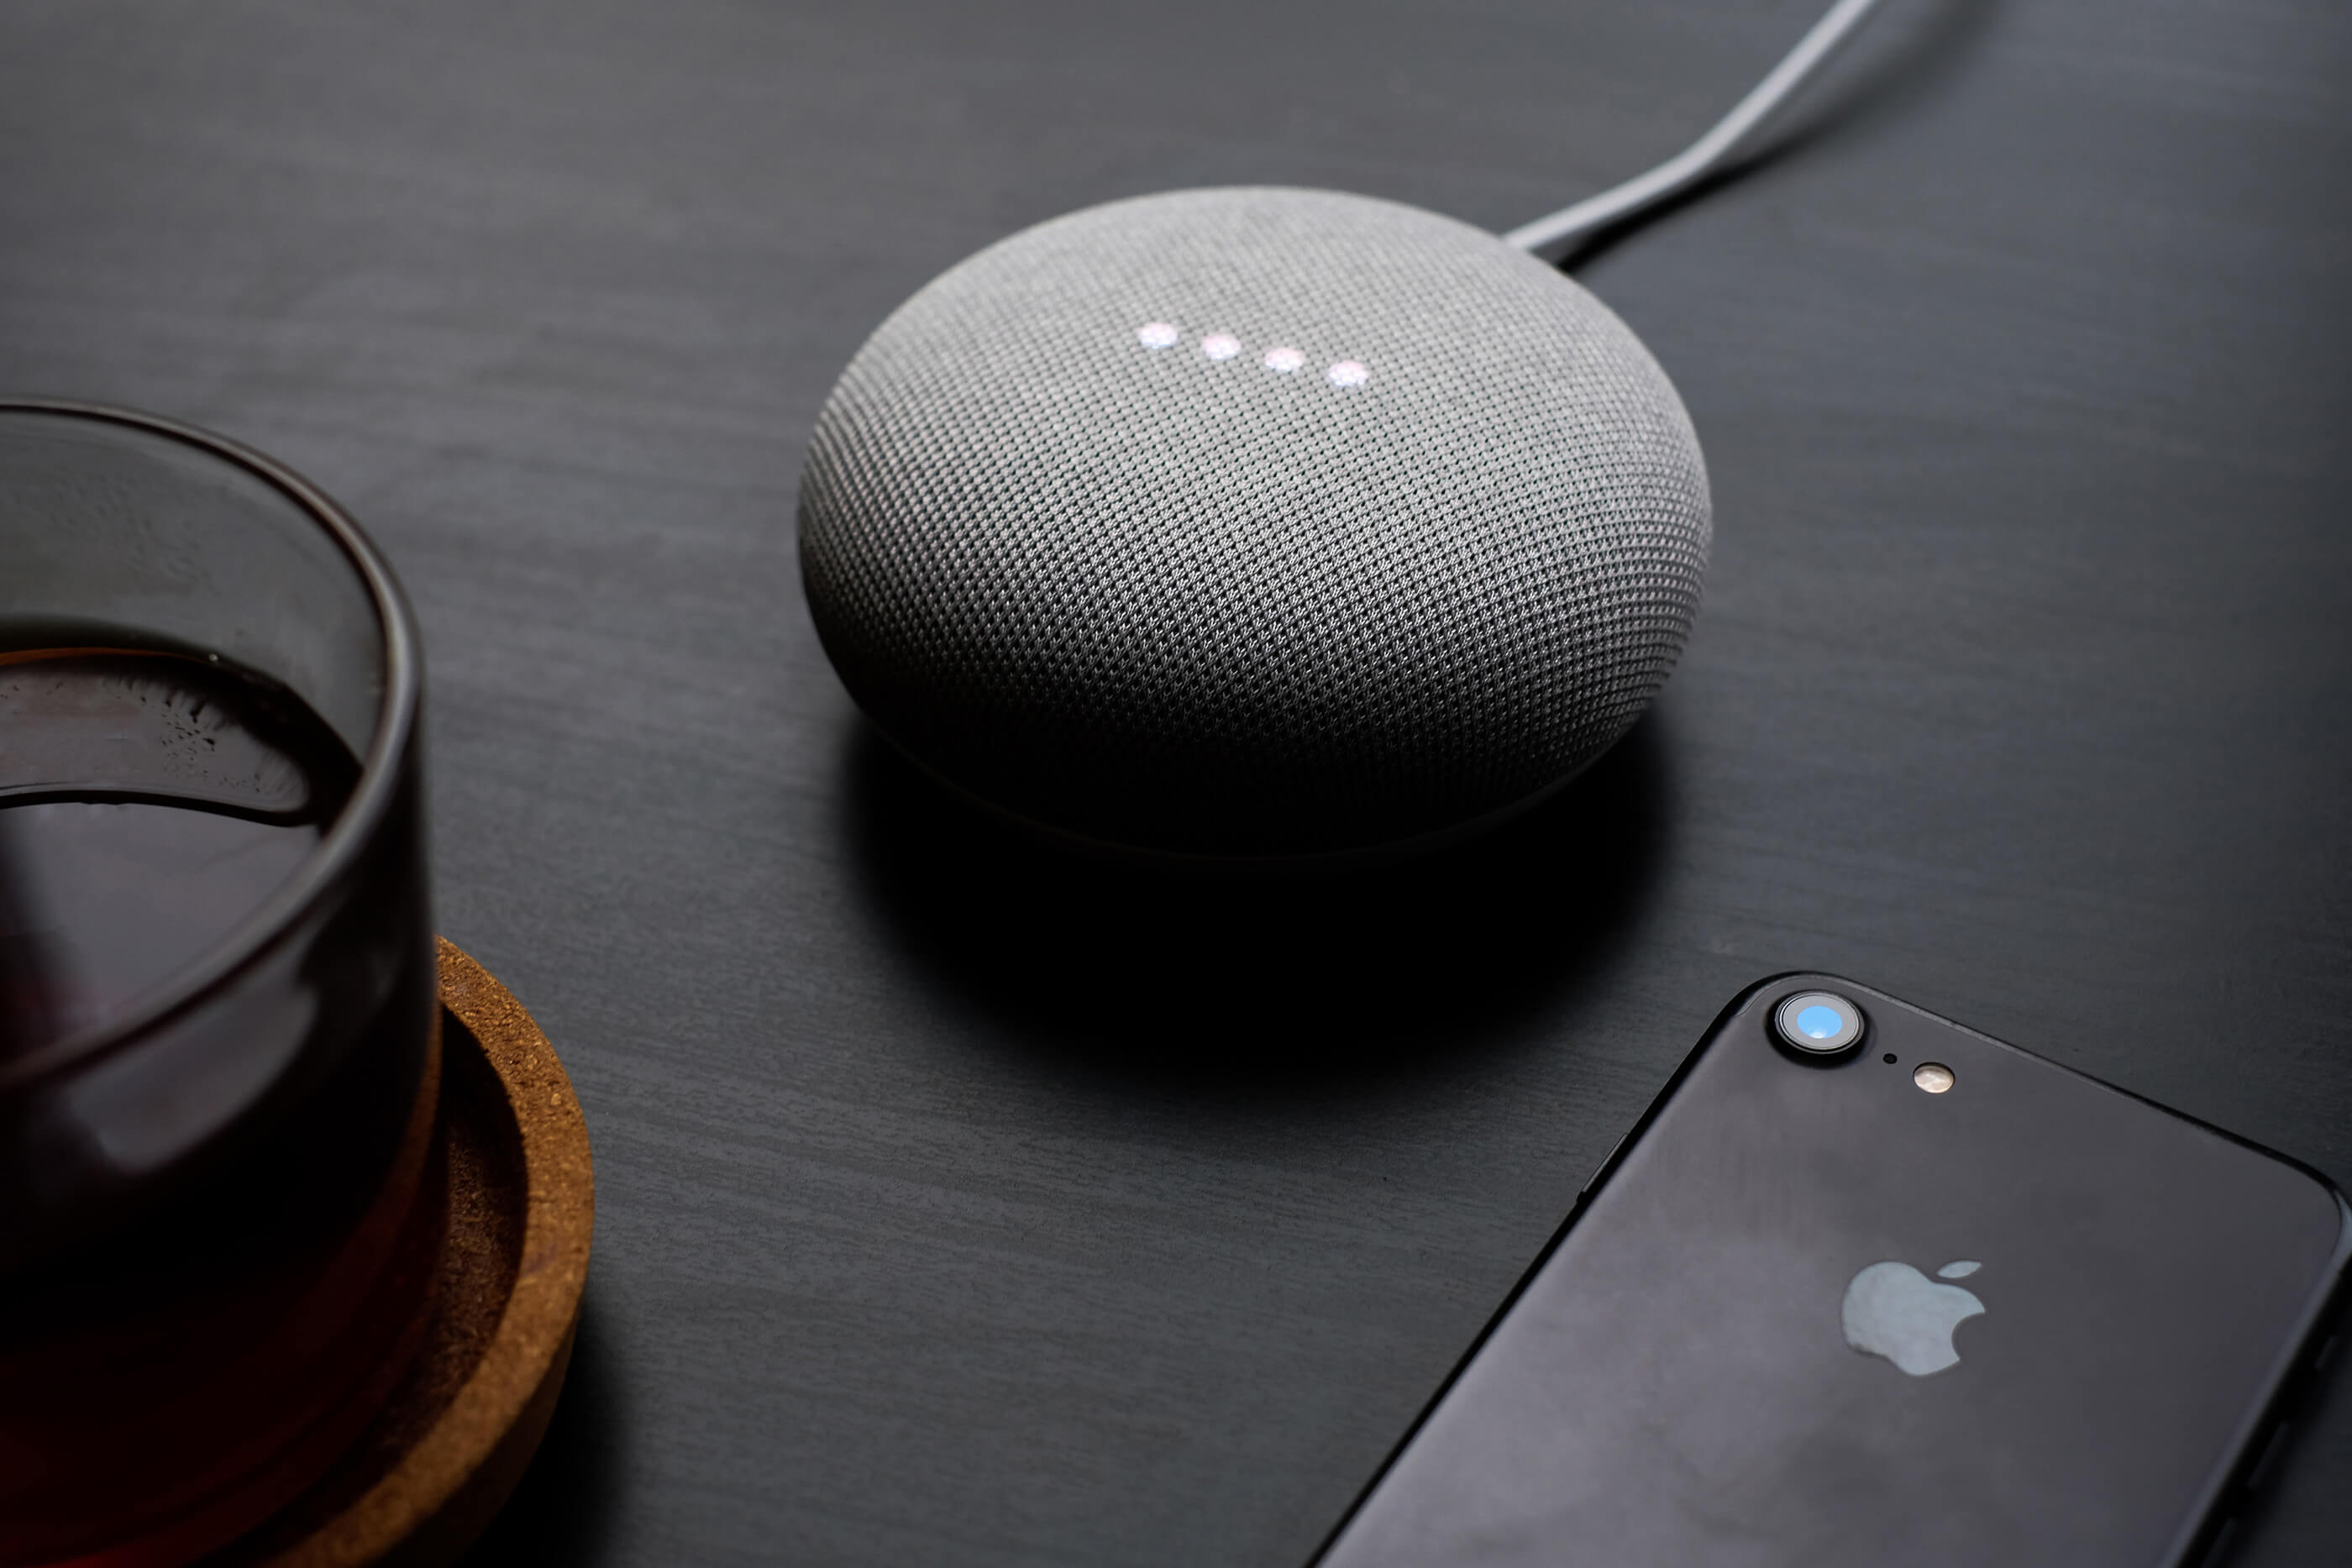 Opinion: The voice assistant war, what if nobody wins?